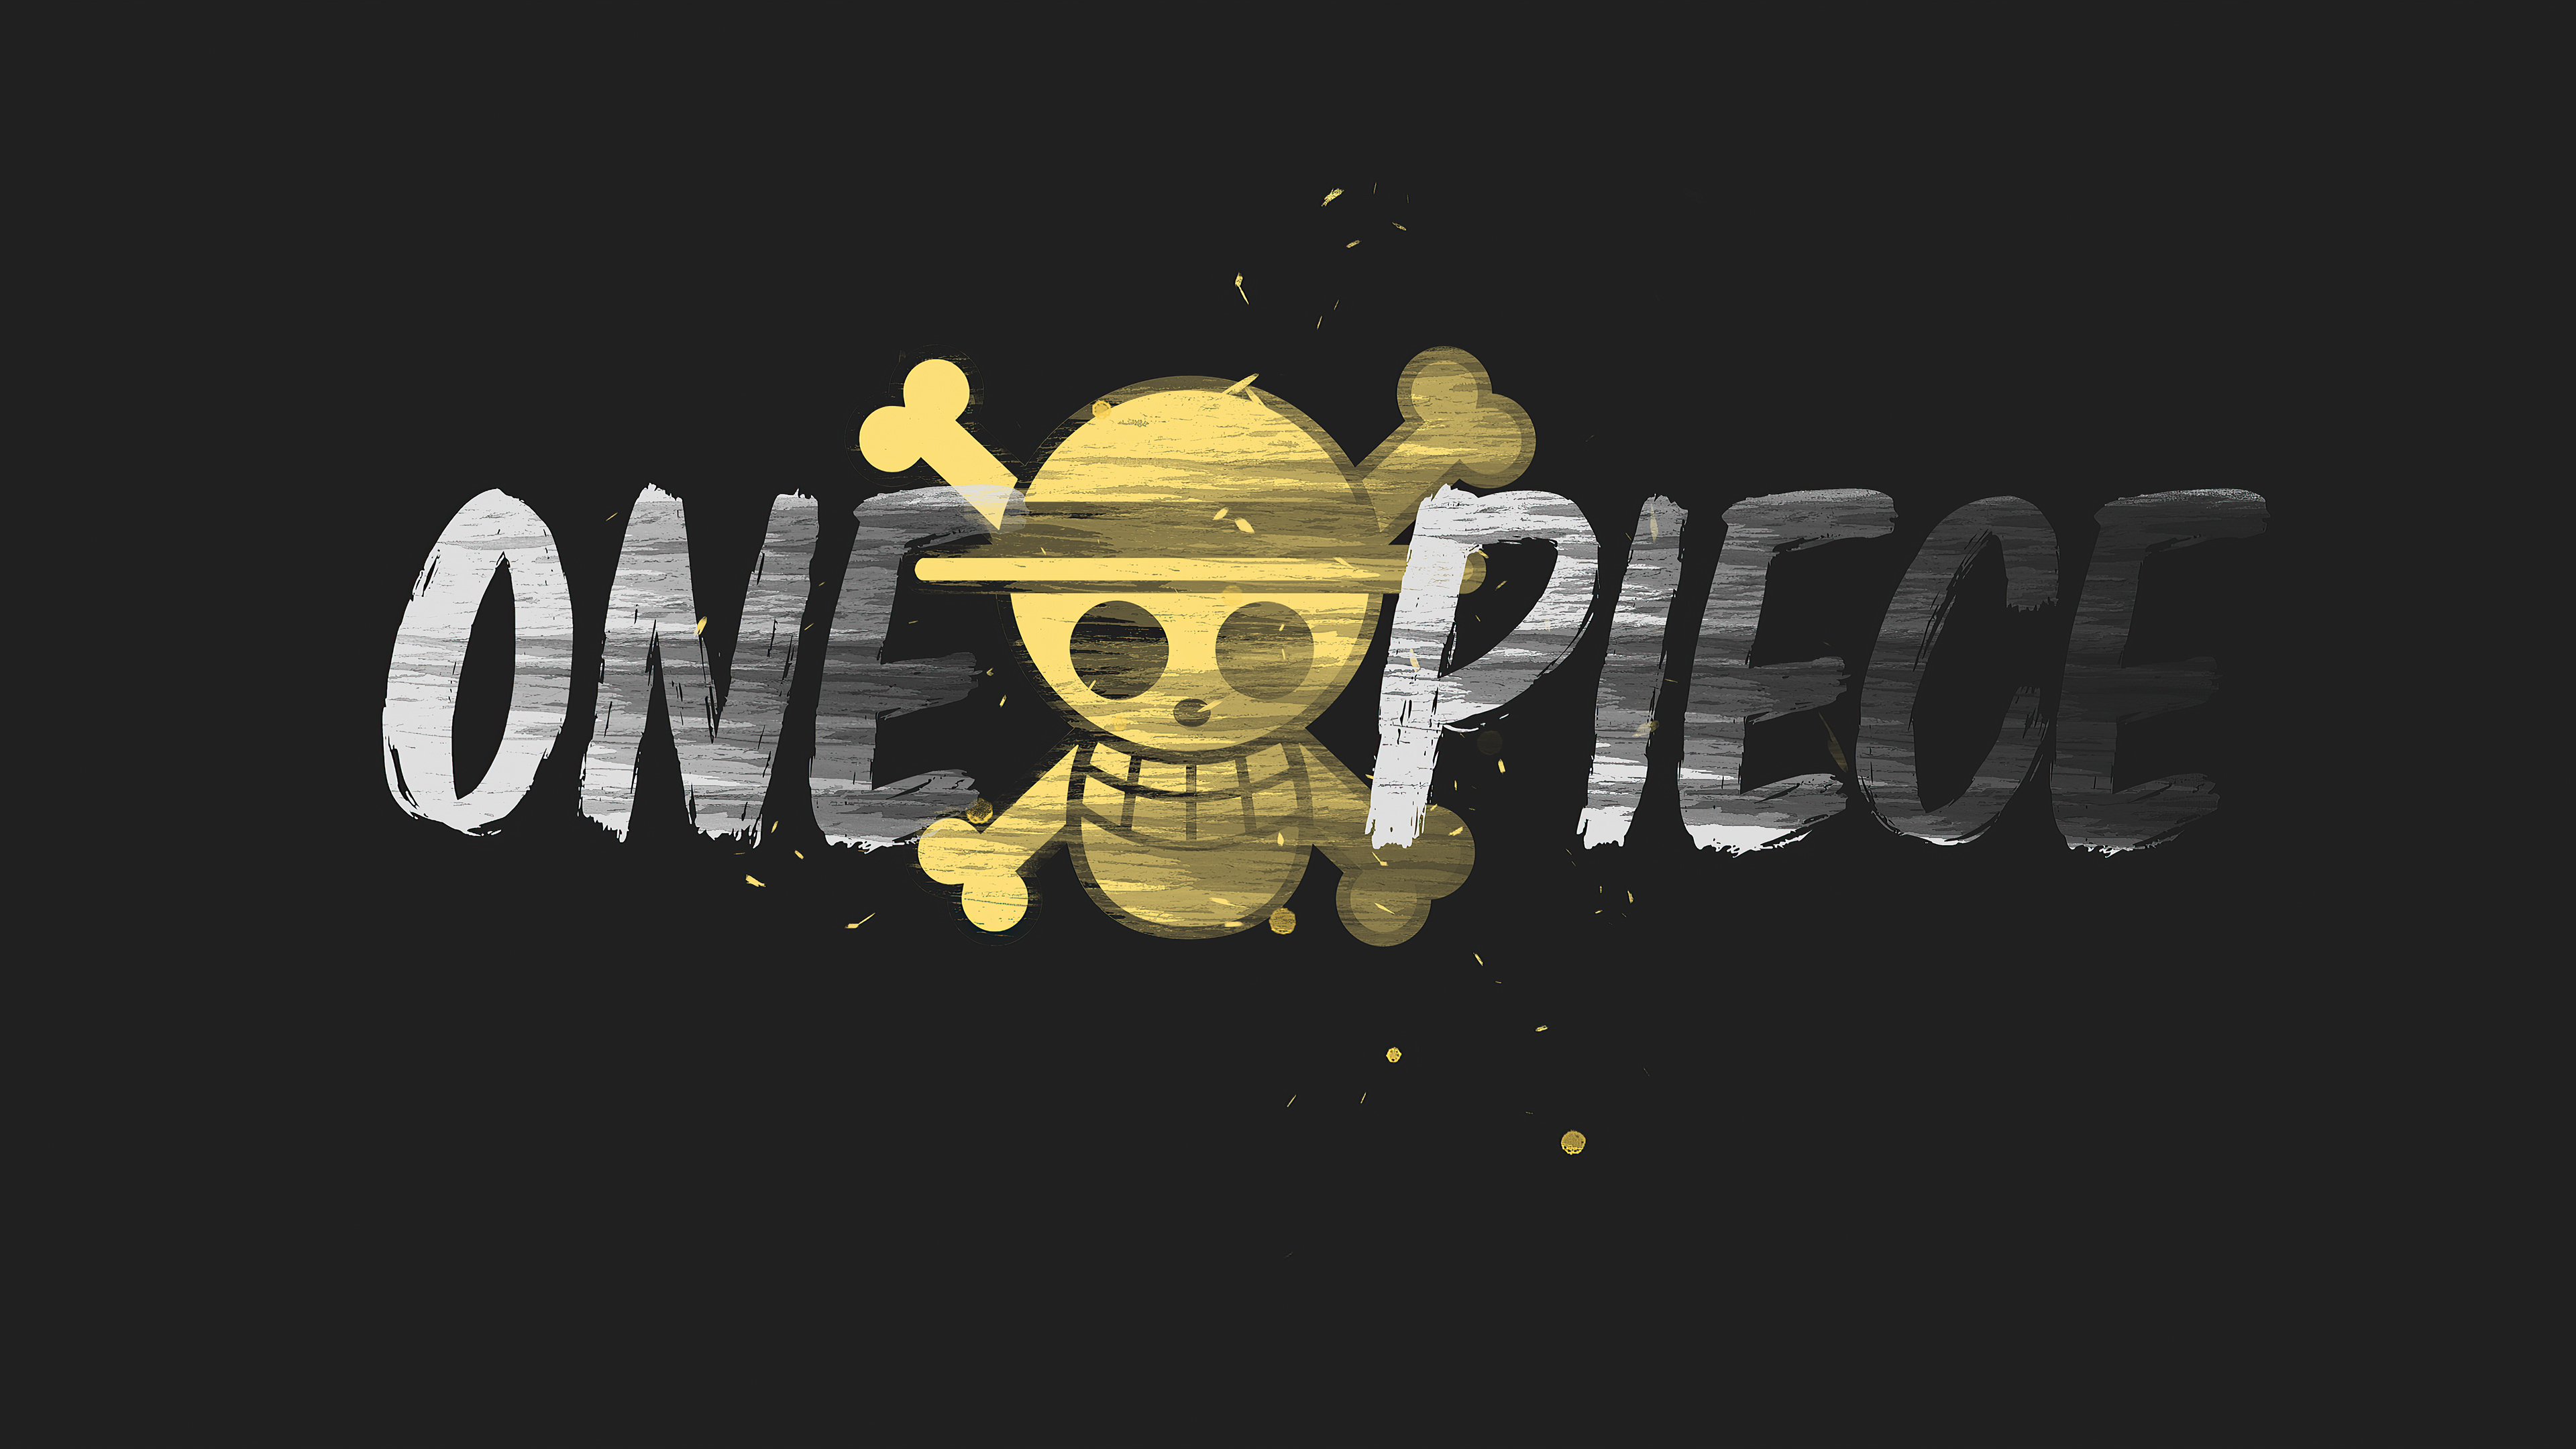 One Piece 4k Ultra Hd Wallpaper Background Image 3840x2160 Id 1104810 Wallpaper Abyss